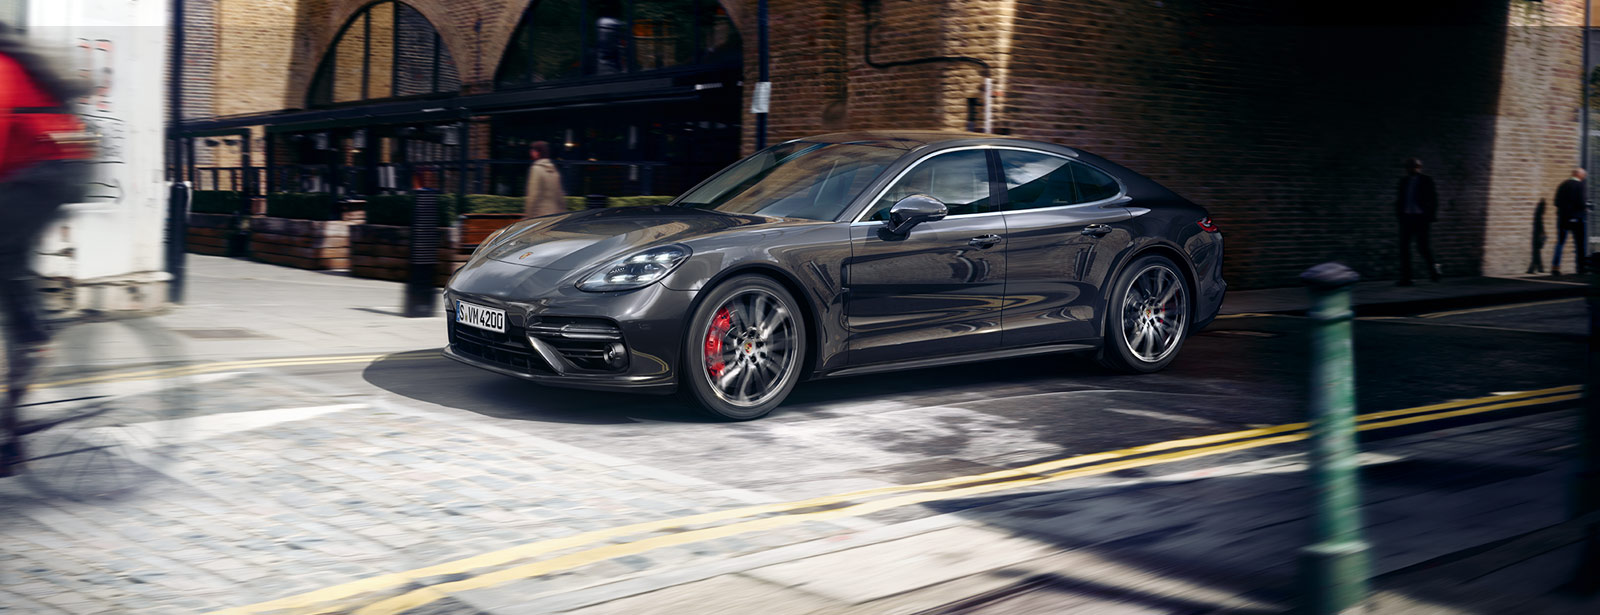 Porsche - Courage changes everything.  - The new Panamera.